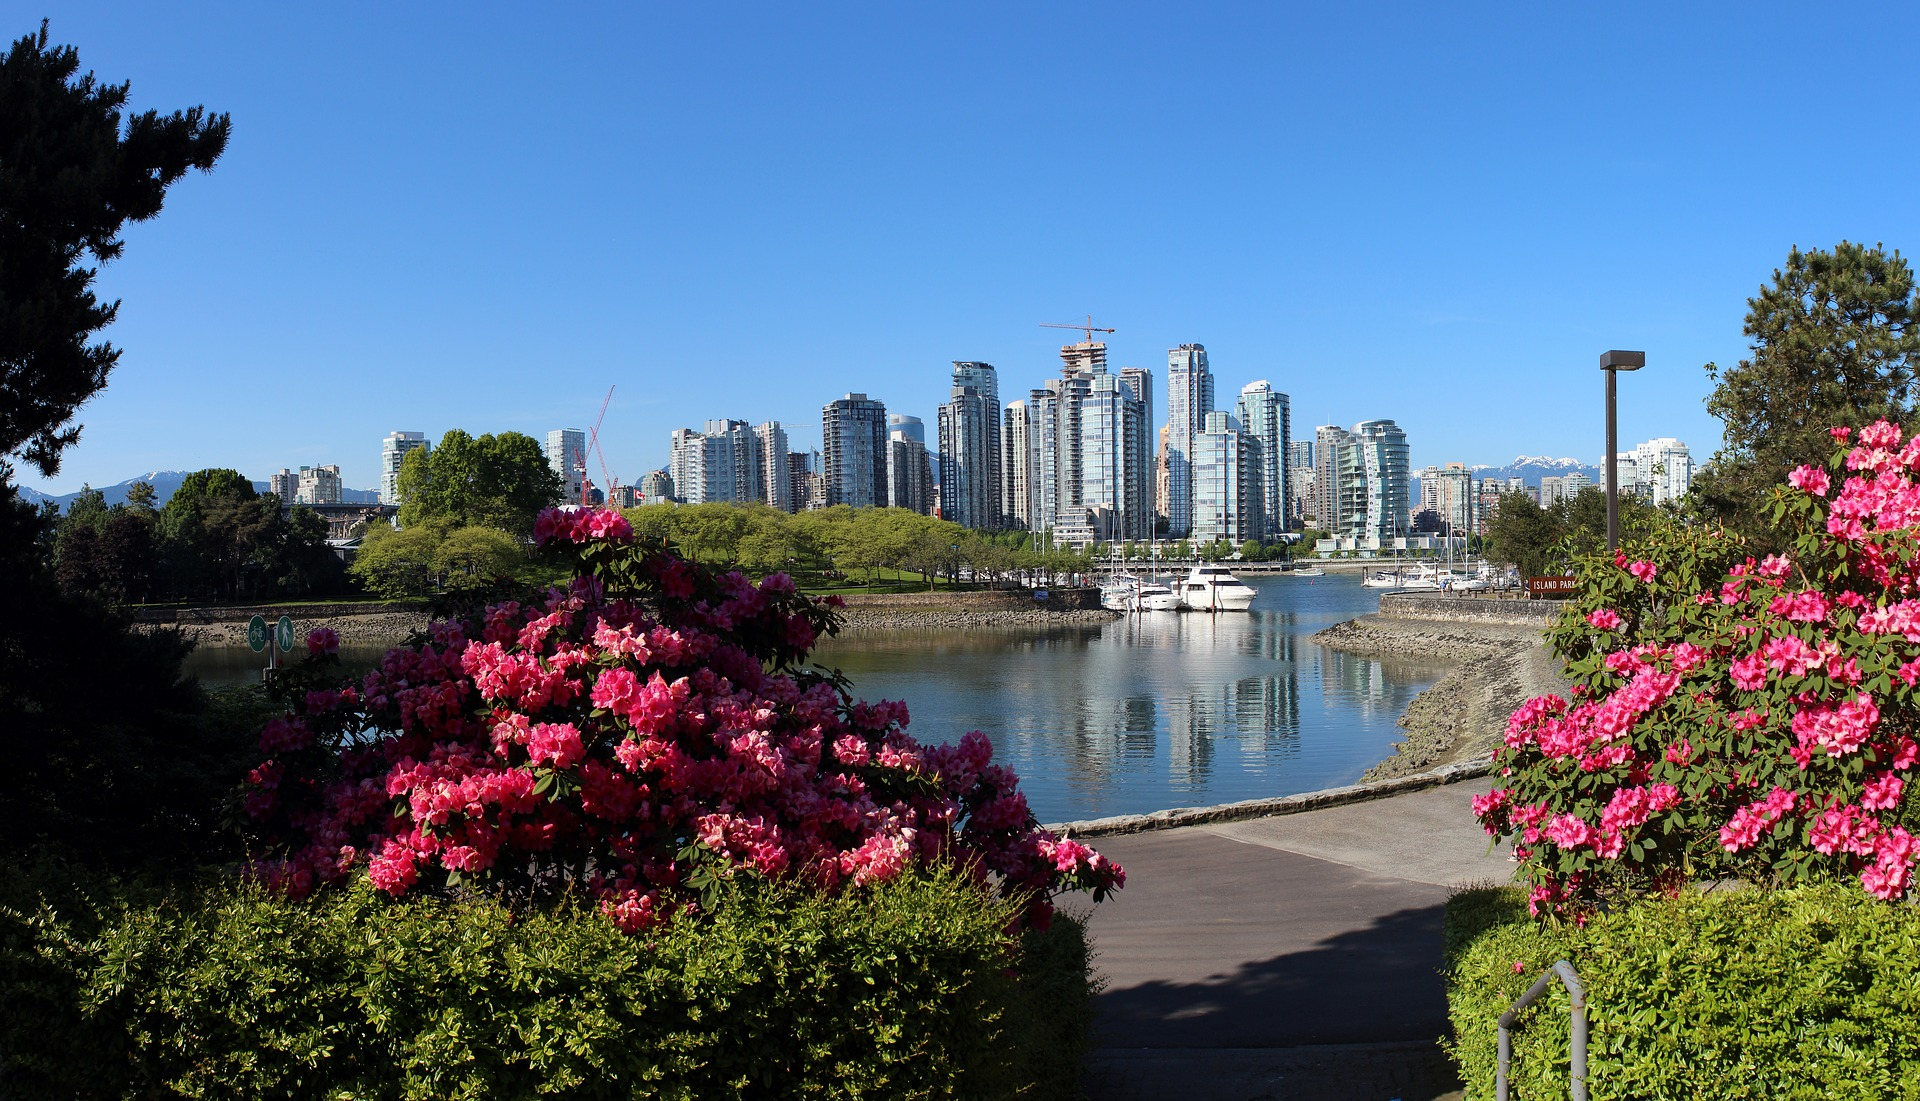 Vancouver's beautiful waterfront